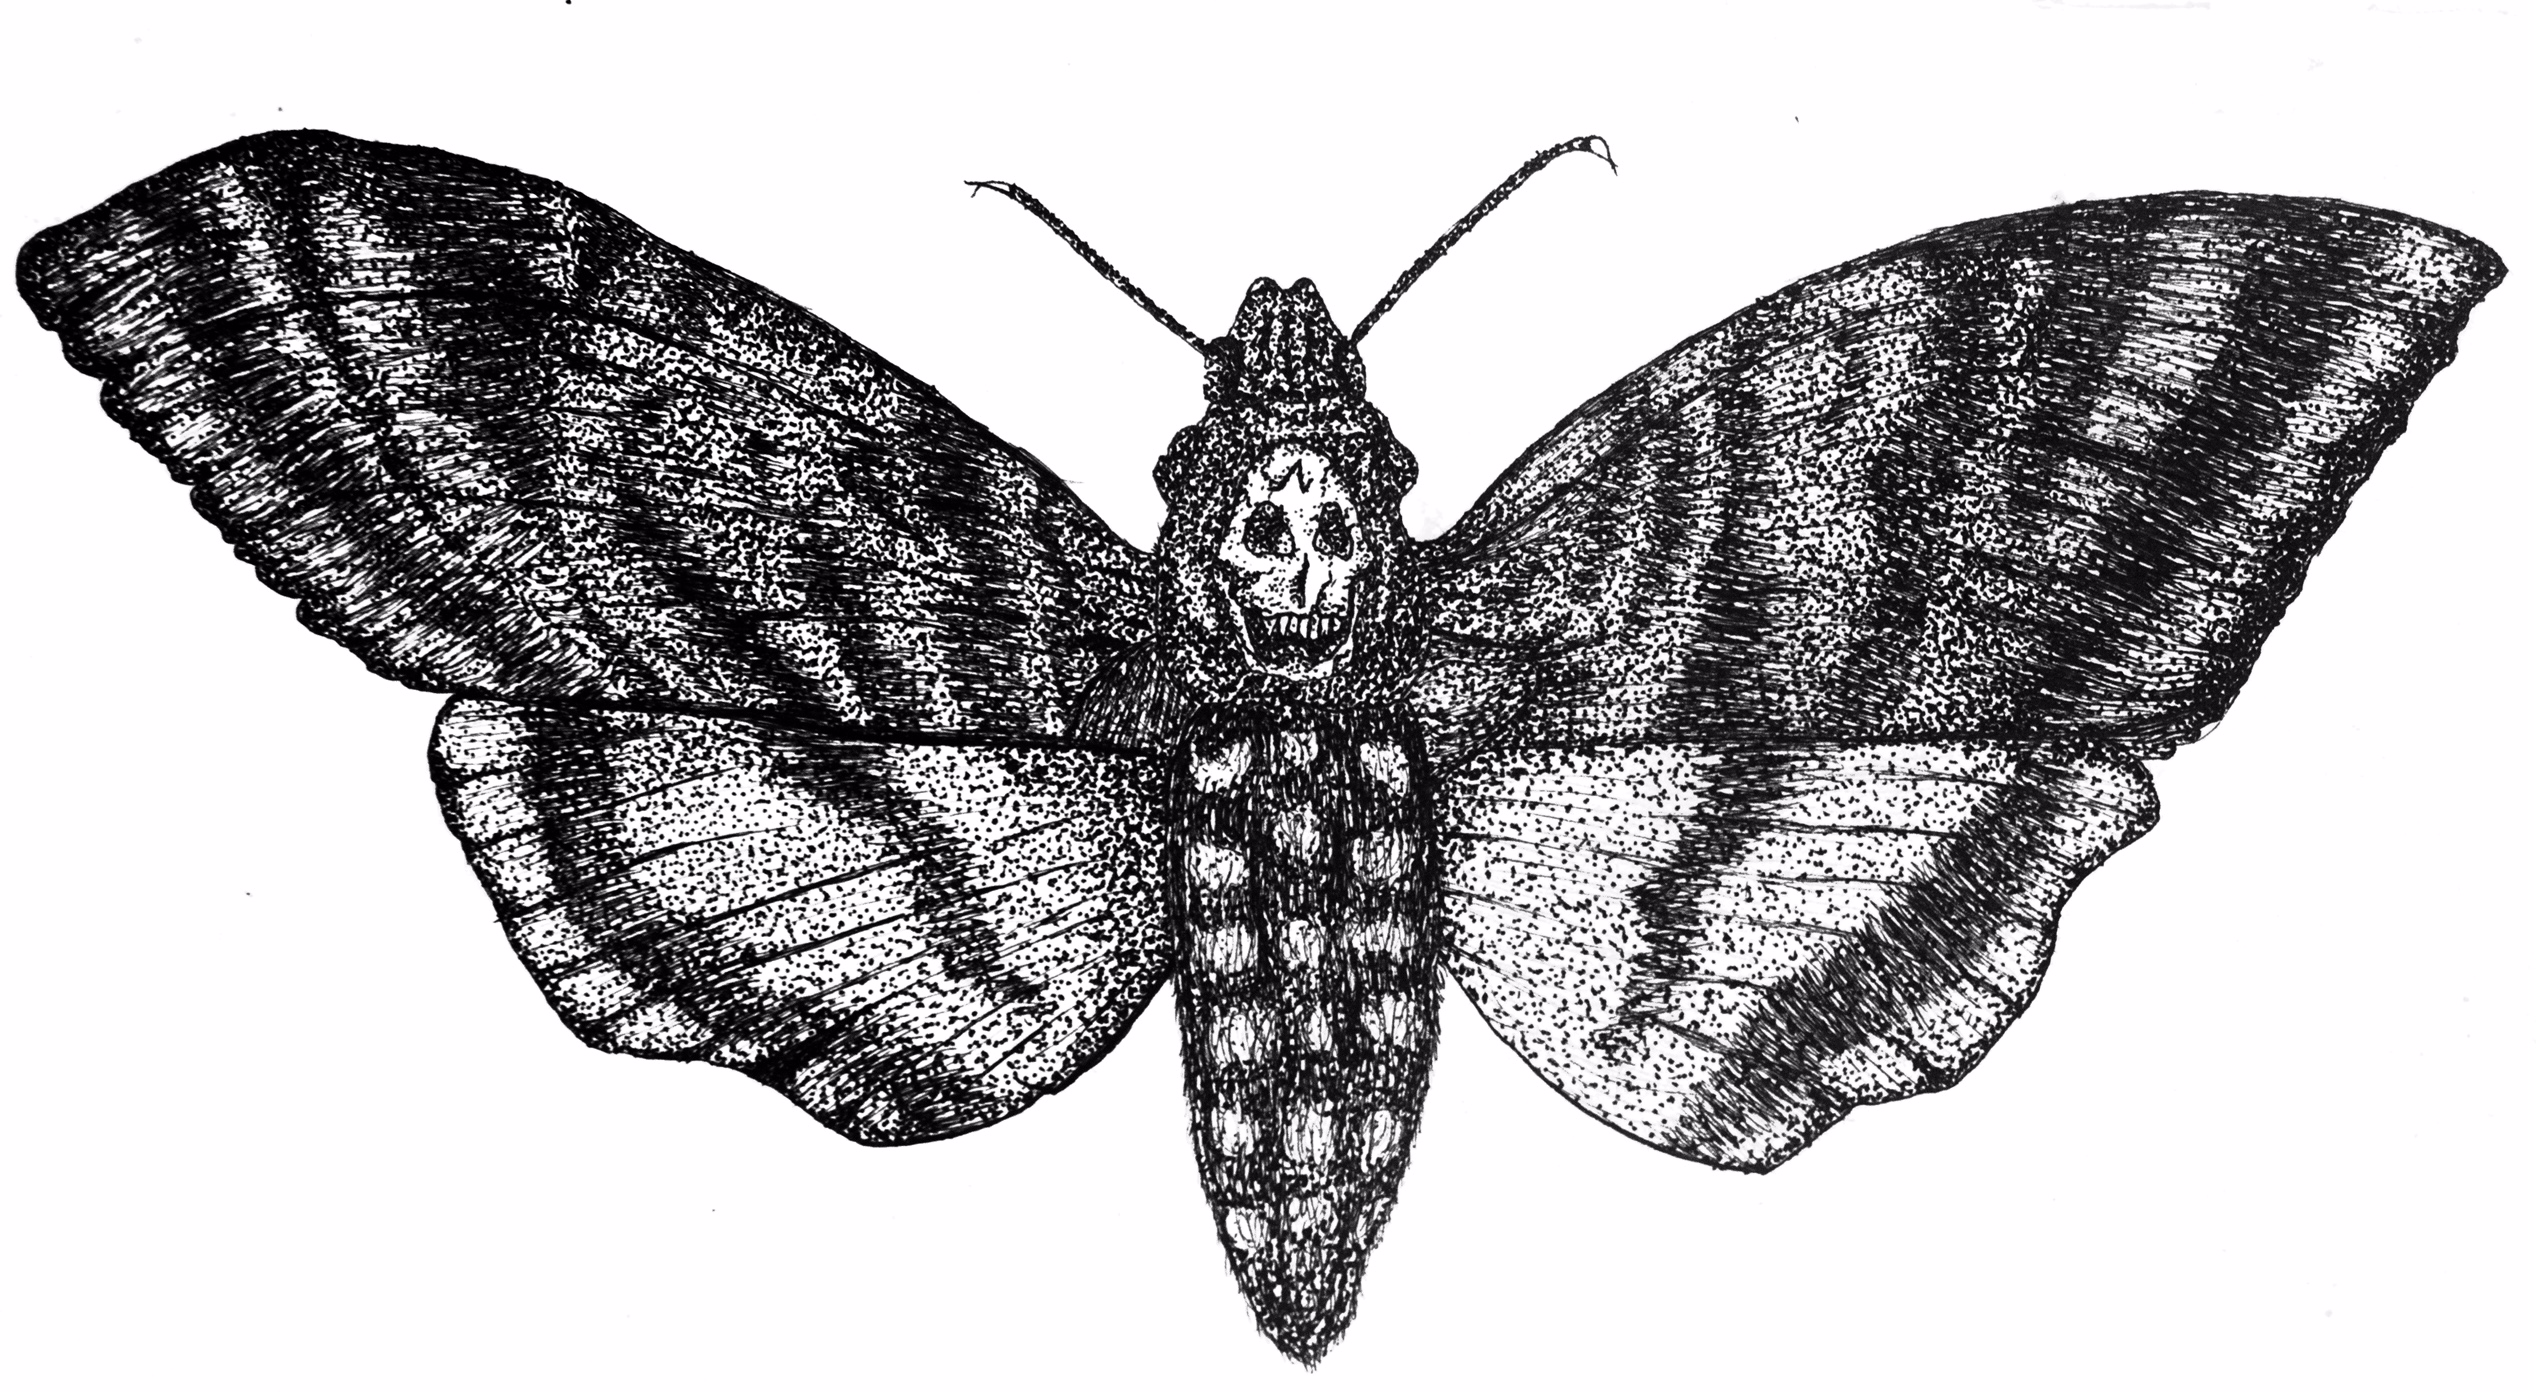 High Resolution Wallpaper | Deaths Head Moth 2536x1392 px